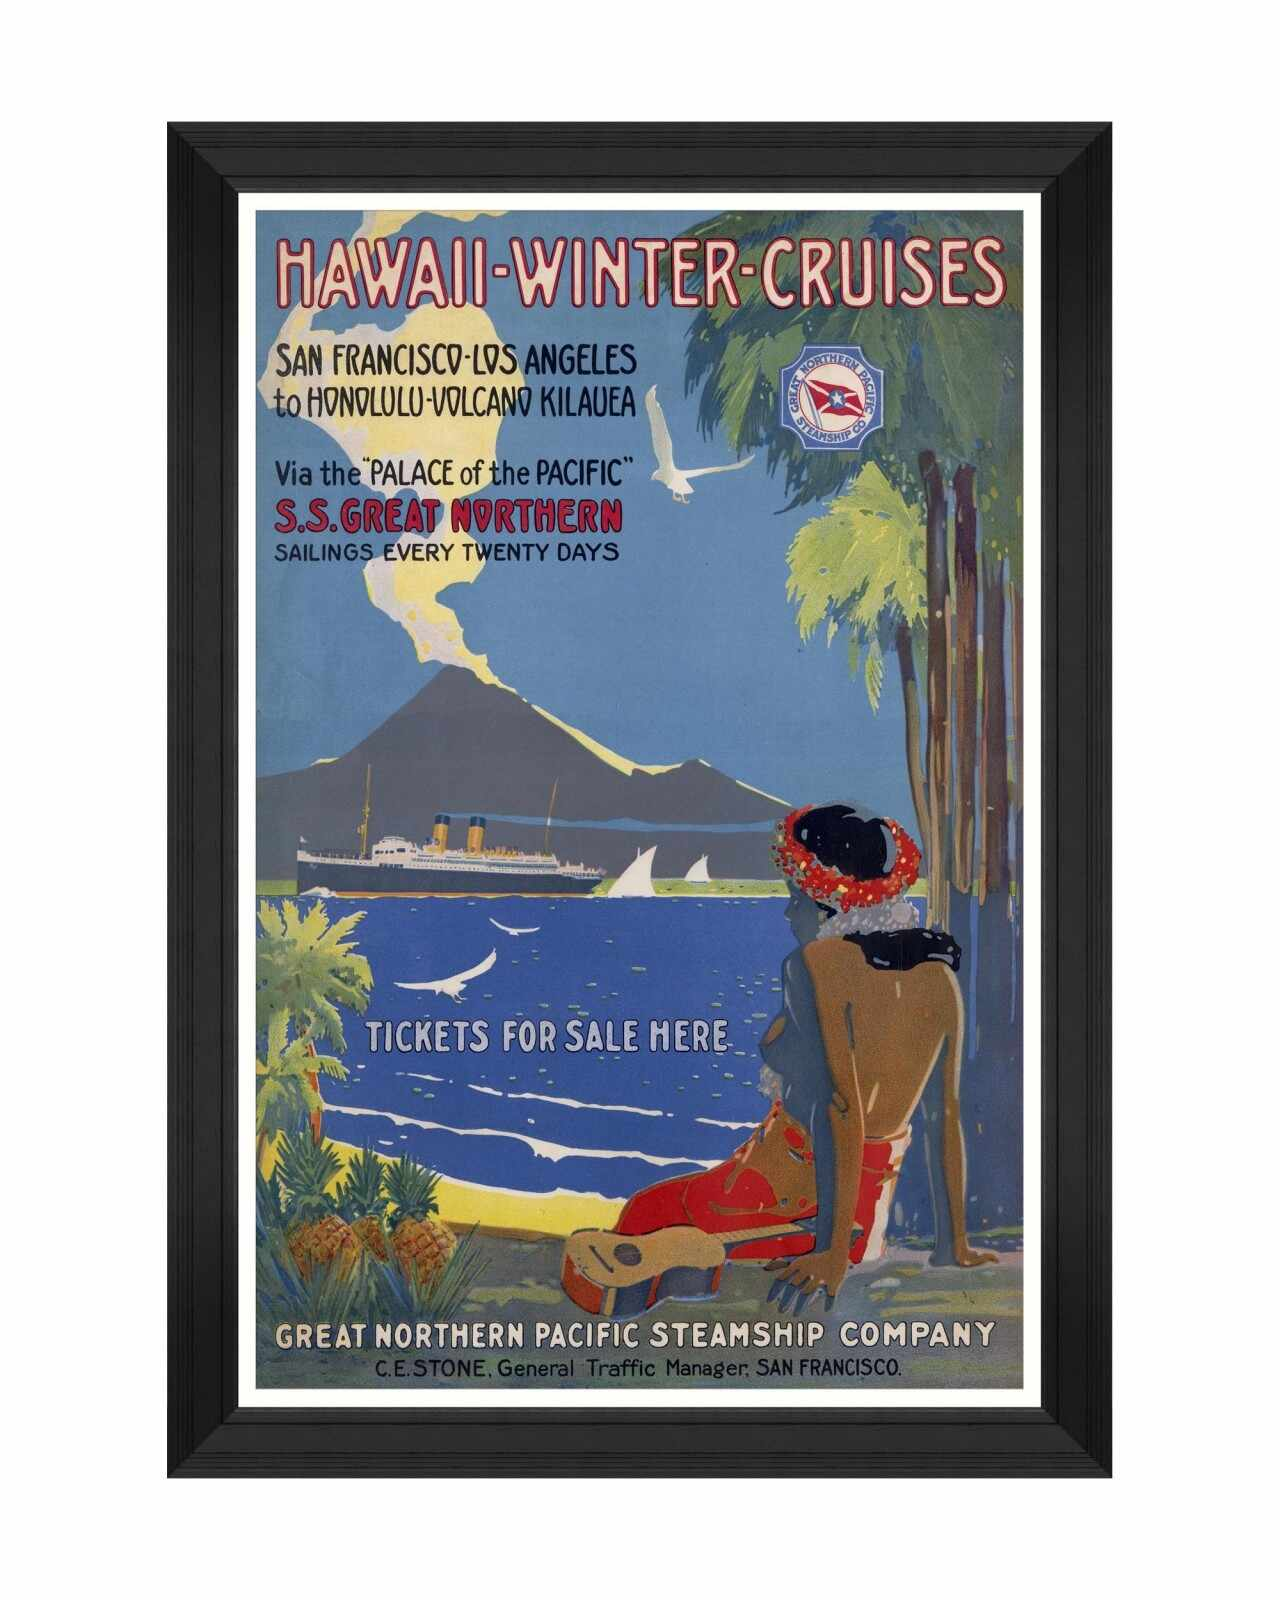 Tablou Framed Art Caribbean Travels - Hawaii Winter Cruises, 60 x 90 cm